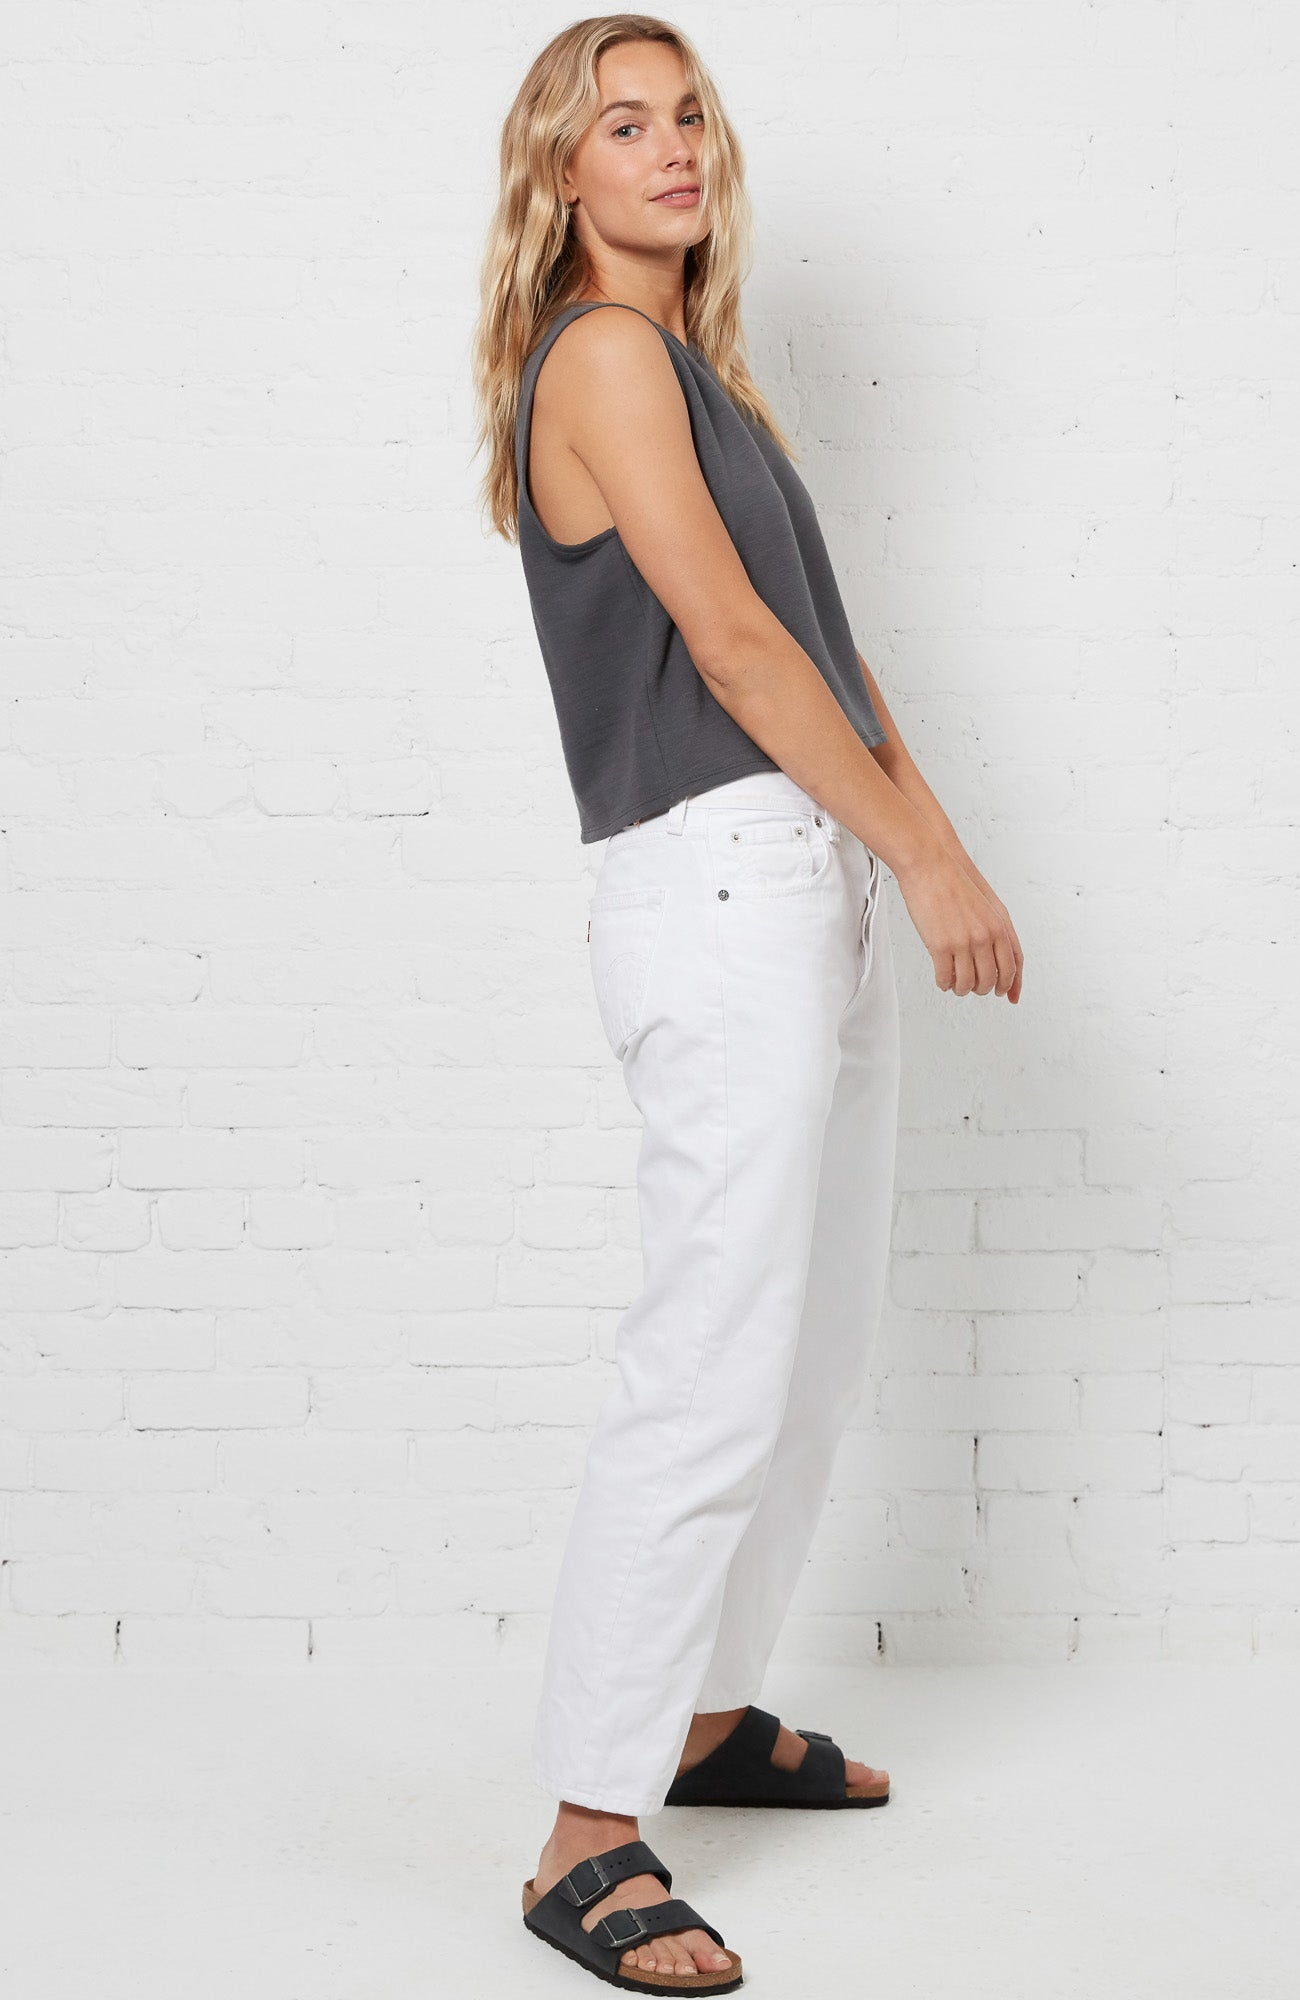 Katie Cropped Tank - Charcoal